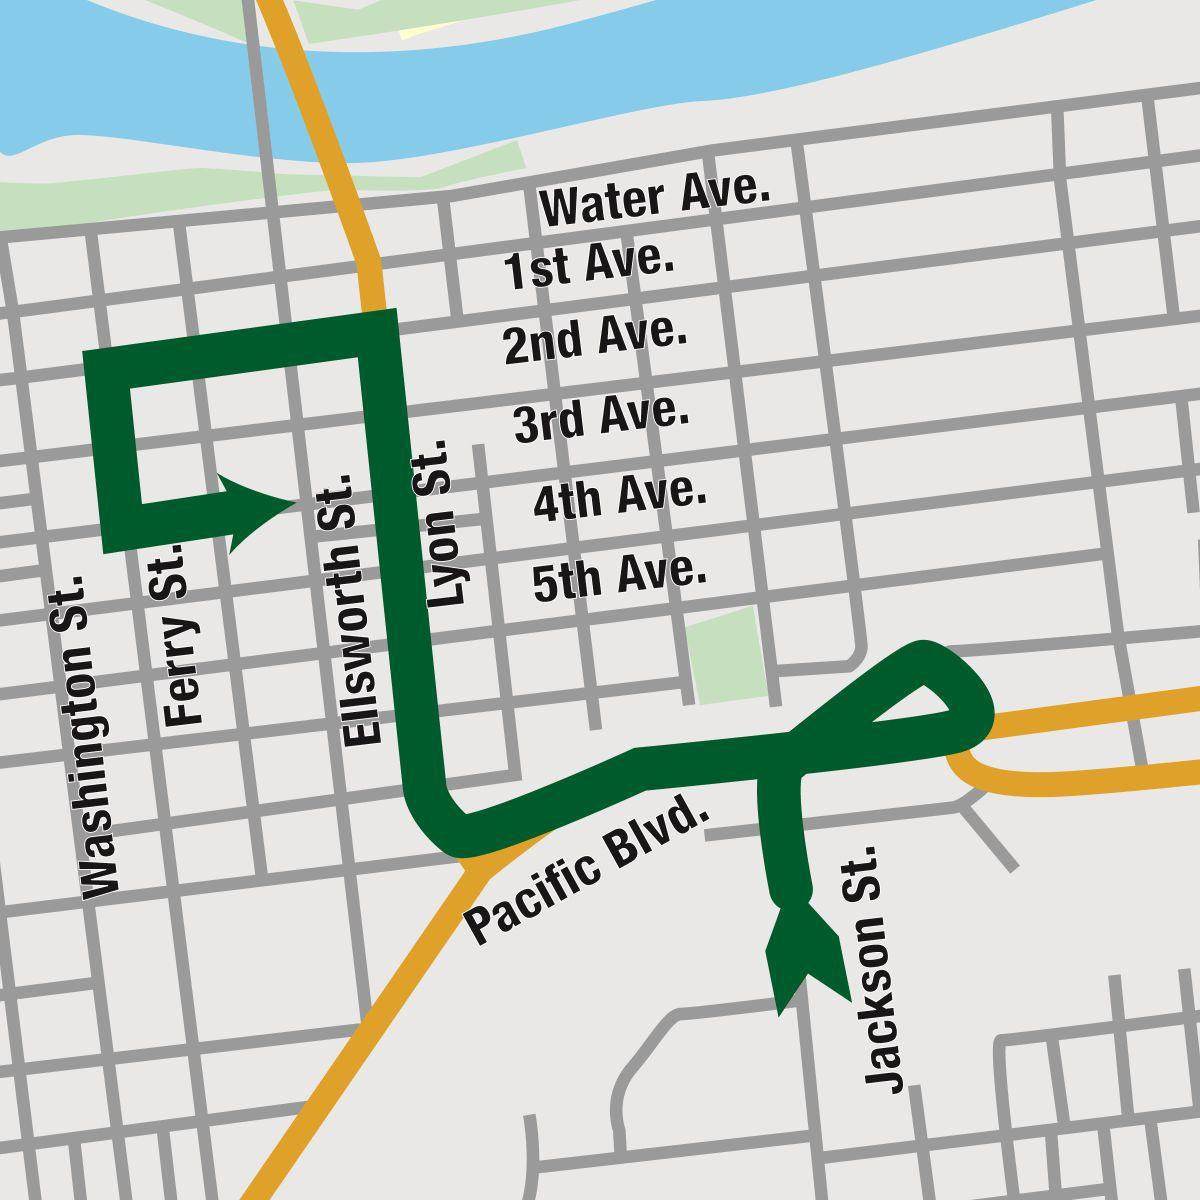 Vets Day Parade map